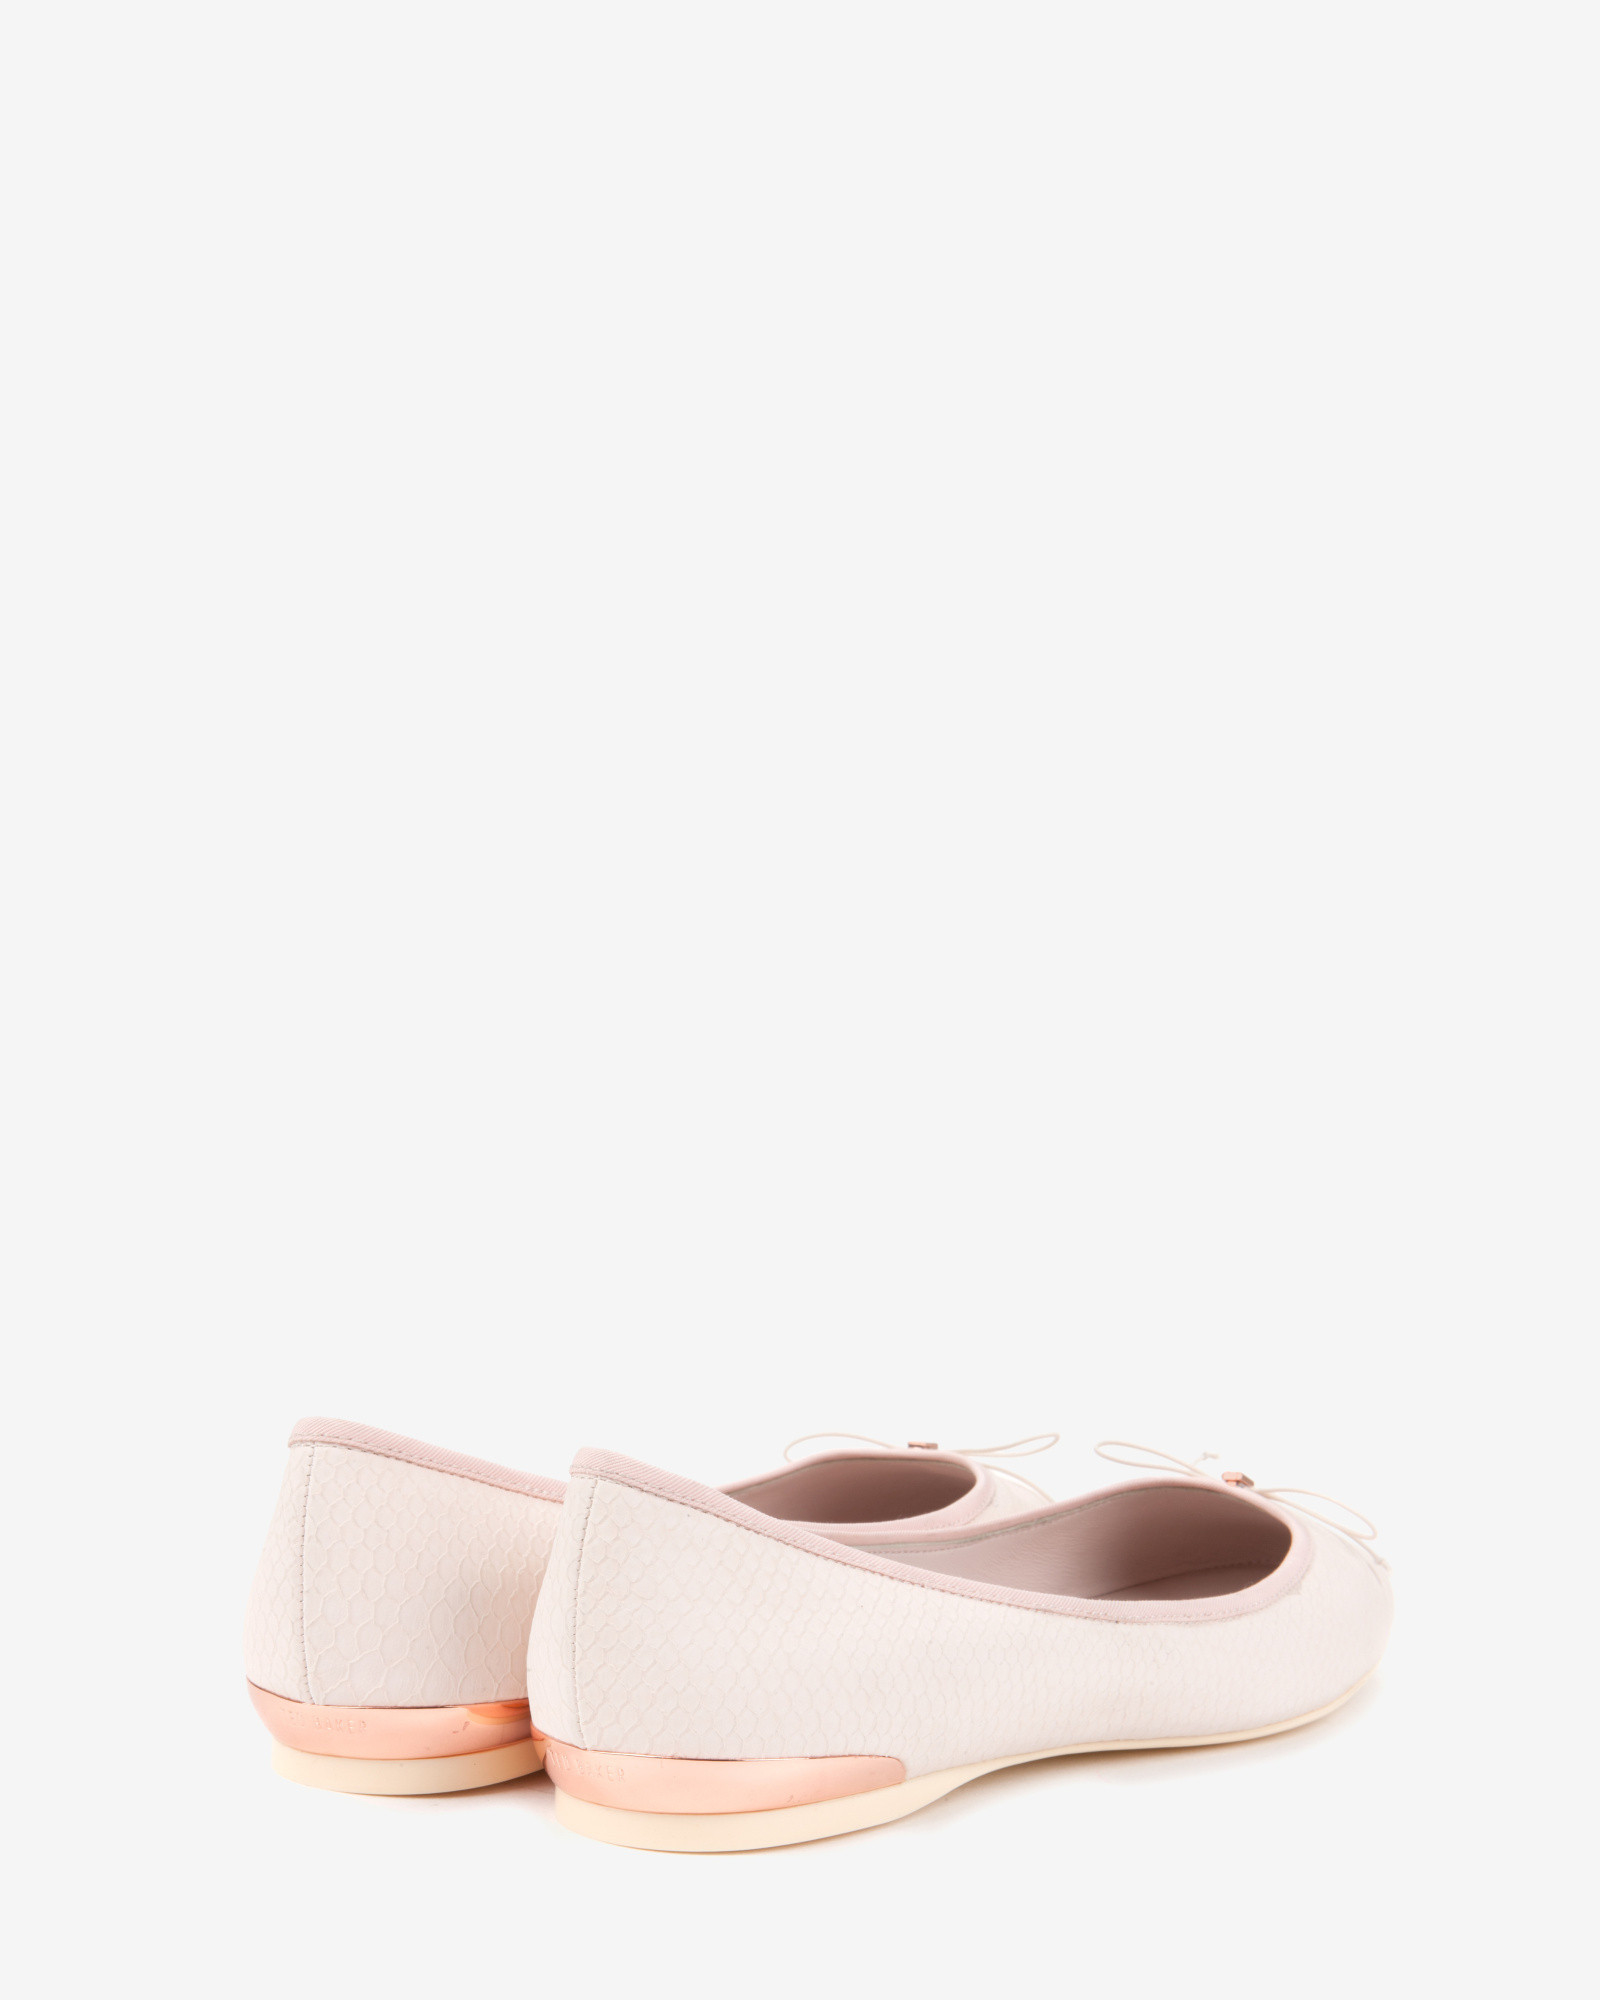 232a2492f4fb9a Ted Baker Ballet Pumps in Pink - Lyst